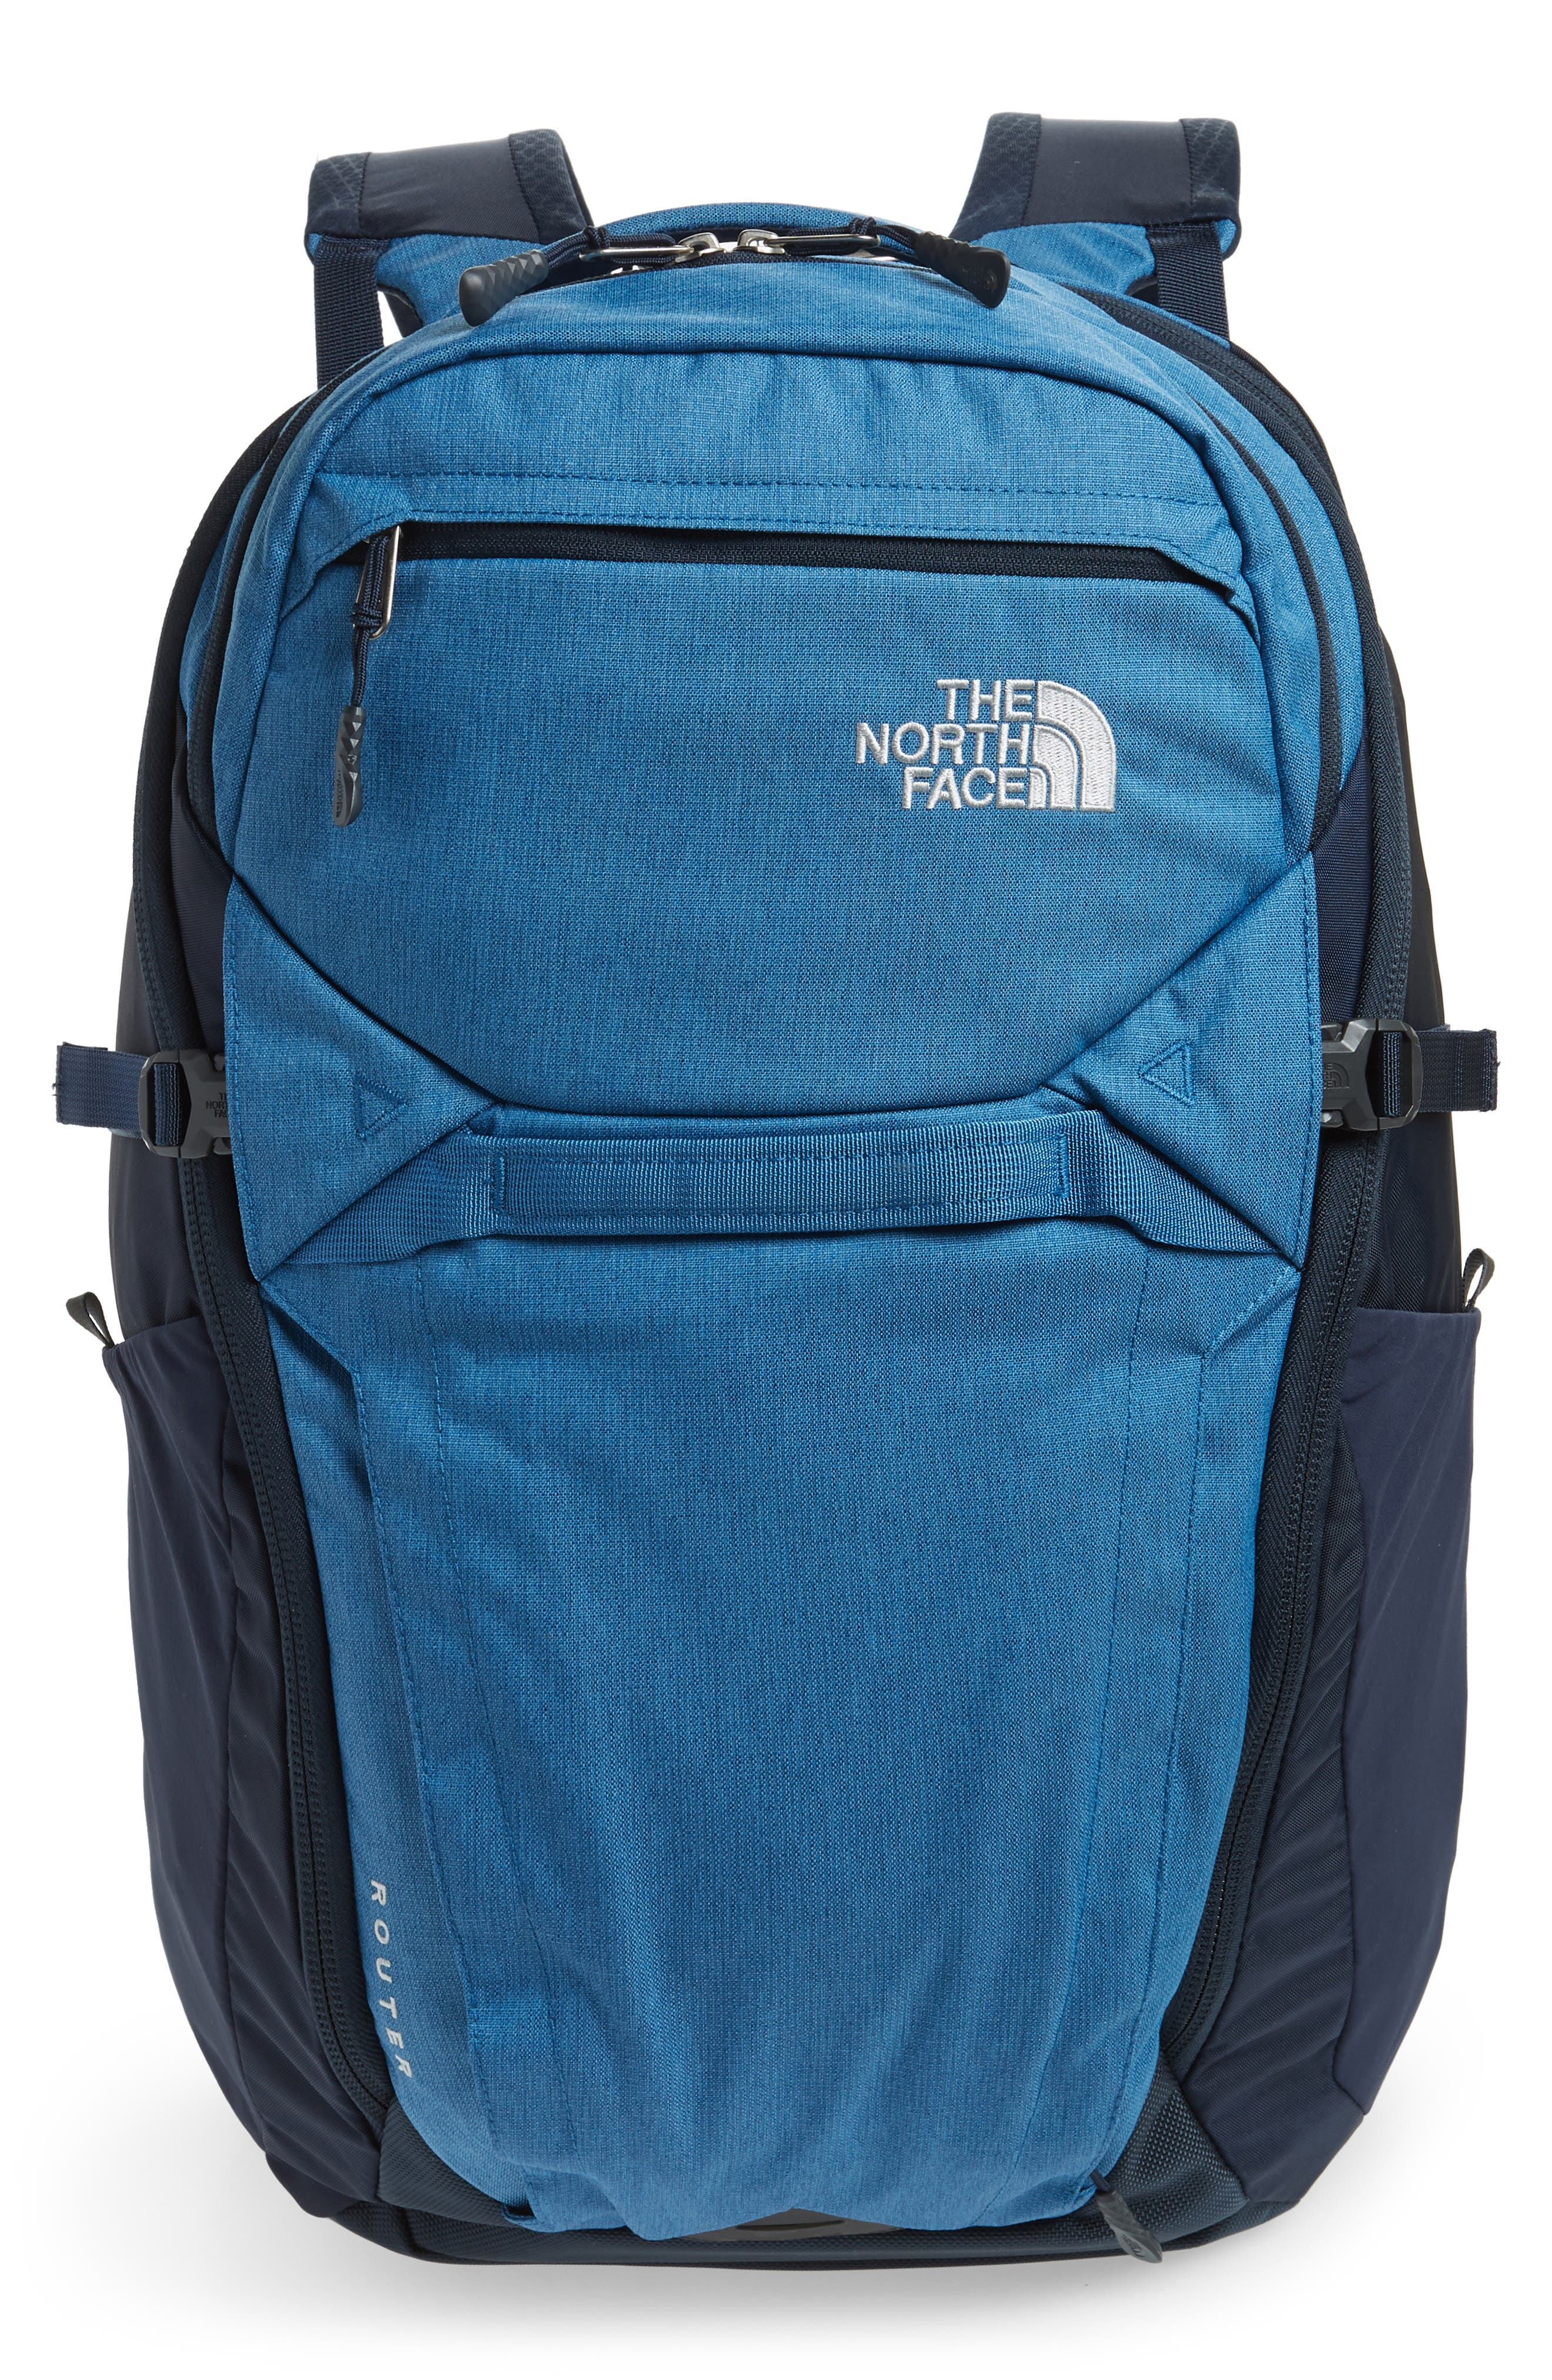 THE NORTH FACE Router Backpack, Main, color, DISH BLUE HEATHER/ URBAN NAVY